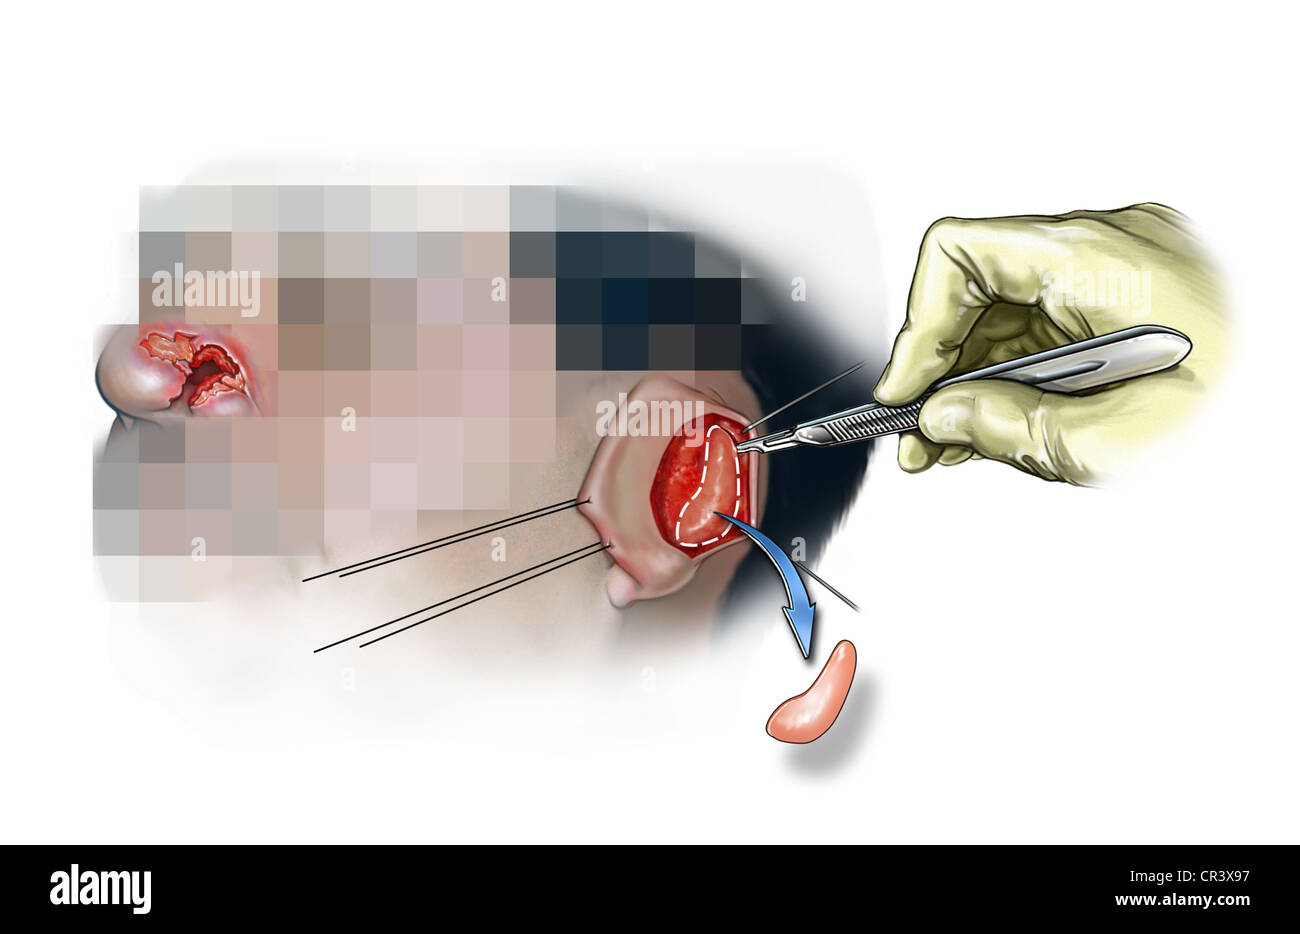 Ear cartilage stock photos ear cartilage stock images alamy harvest of ear cartilage stock image ccuart Choice Image